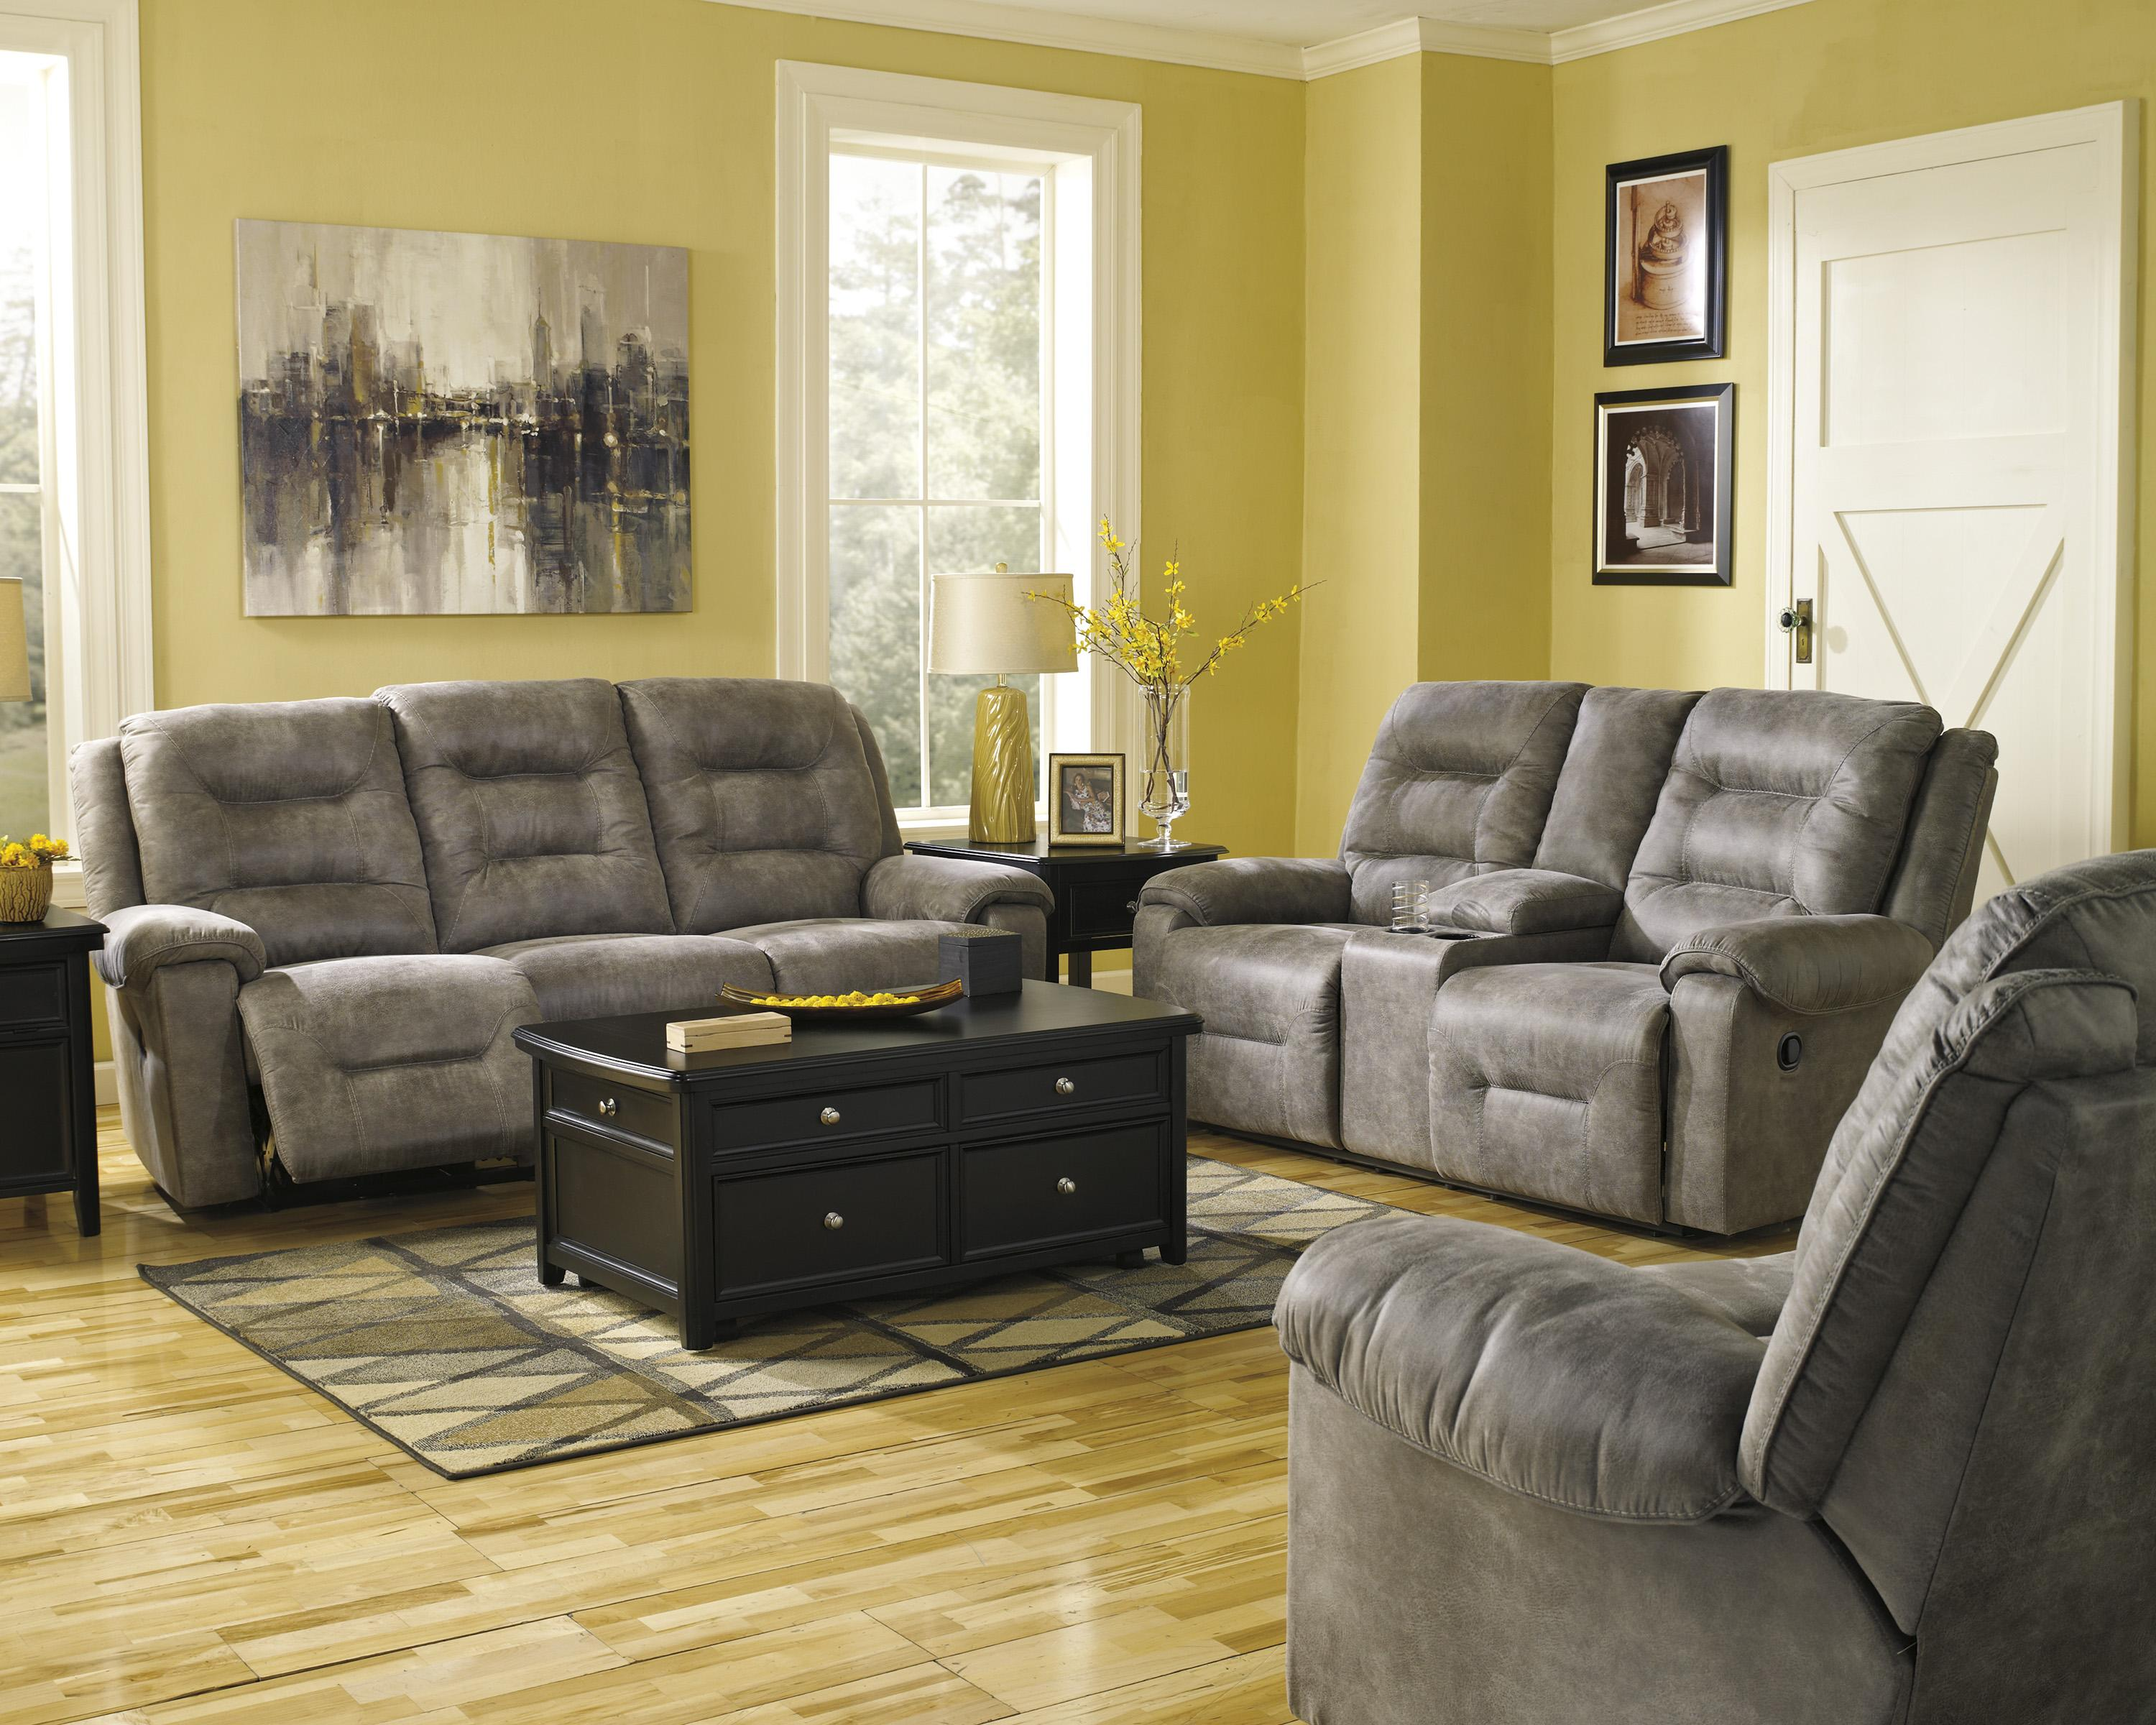 Signature Design by Ashley Rotation - Smoke Reclining Living Room Group - Item Number: 97501 Living Room Group 1